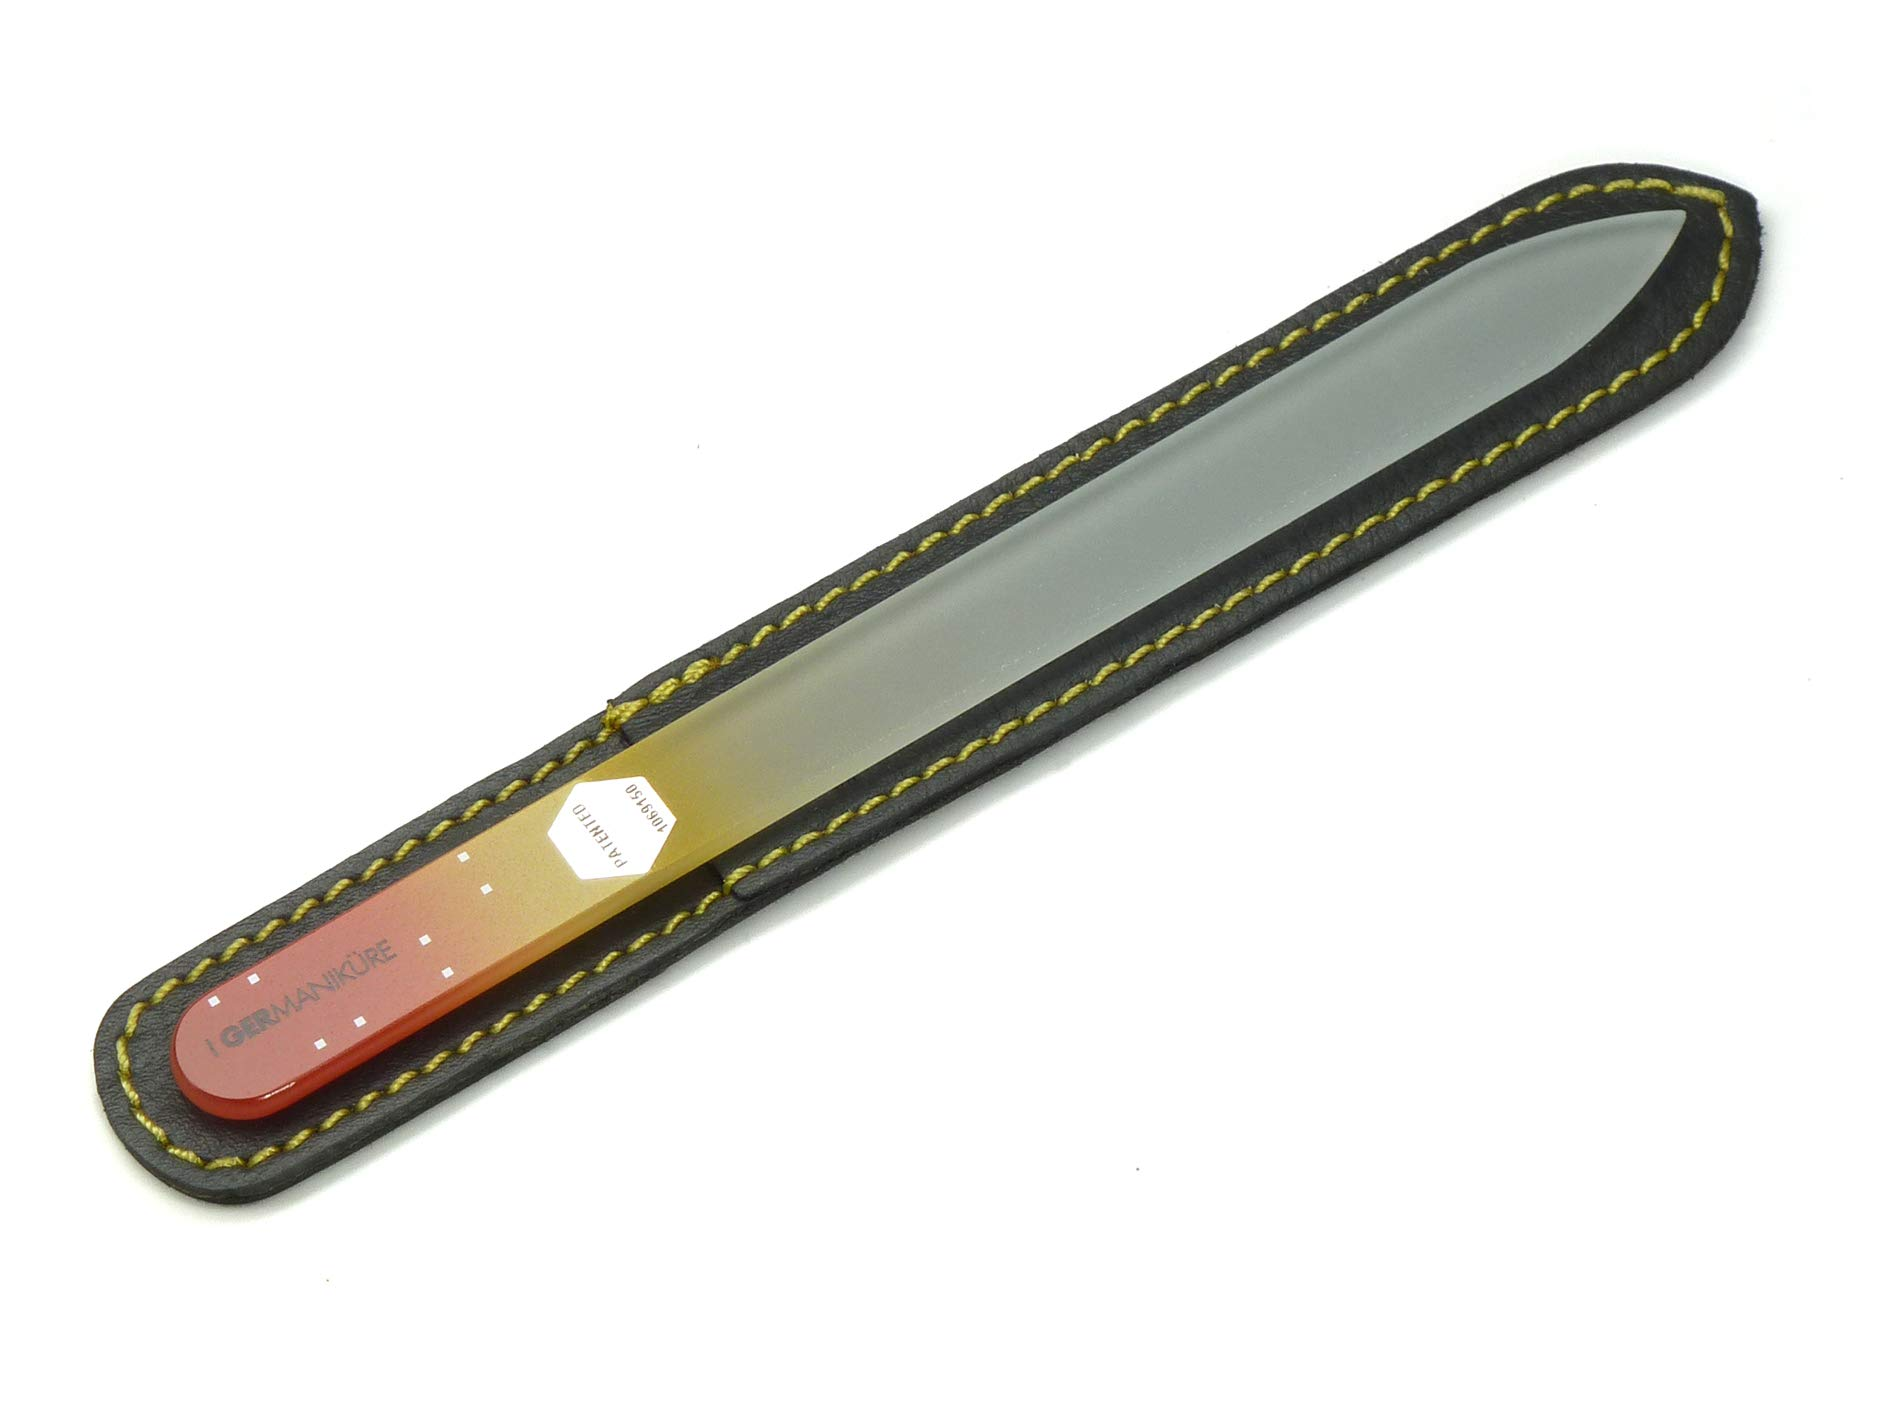 GERmanikure Genuine Patented Czech Crystal Glass Double Sided Manicure Pedicure Mantra Nail File in Protective Leather by GERmanikure